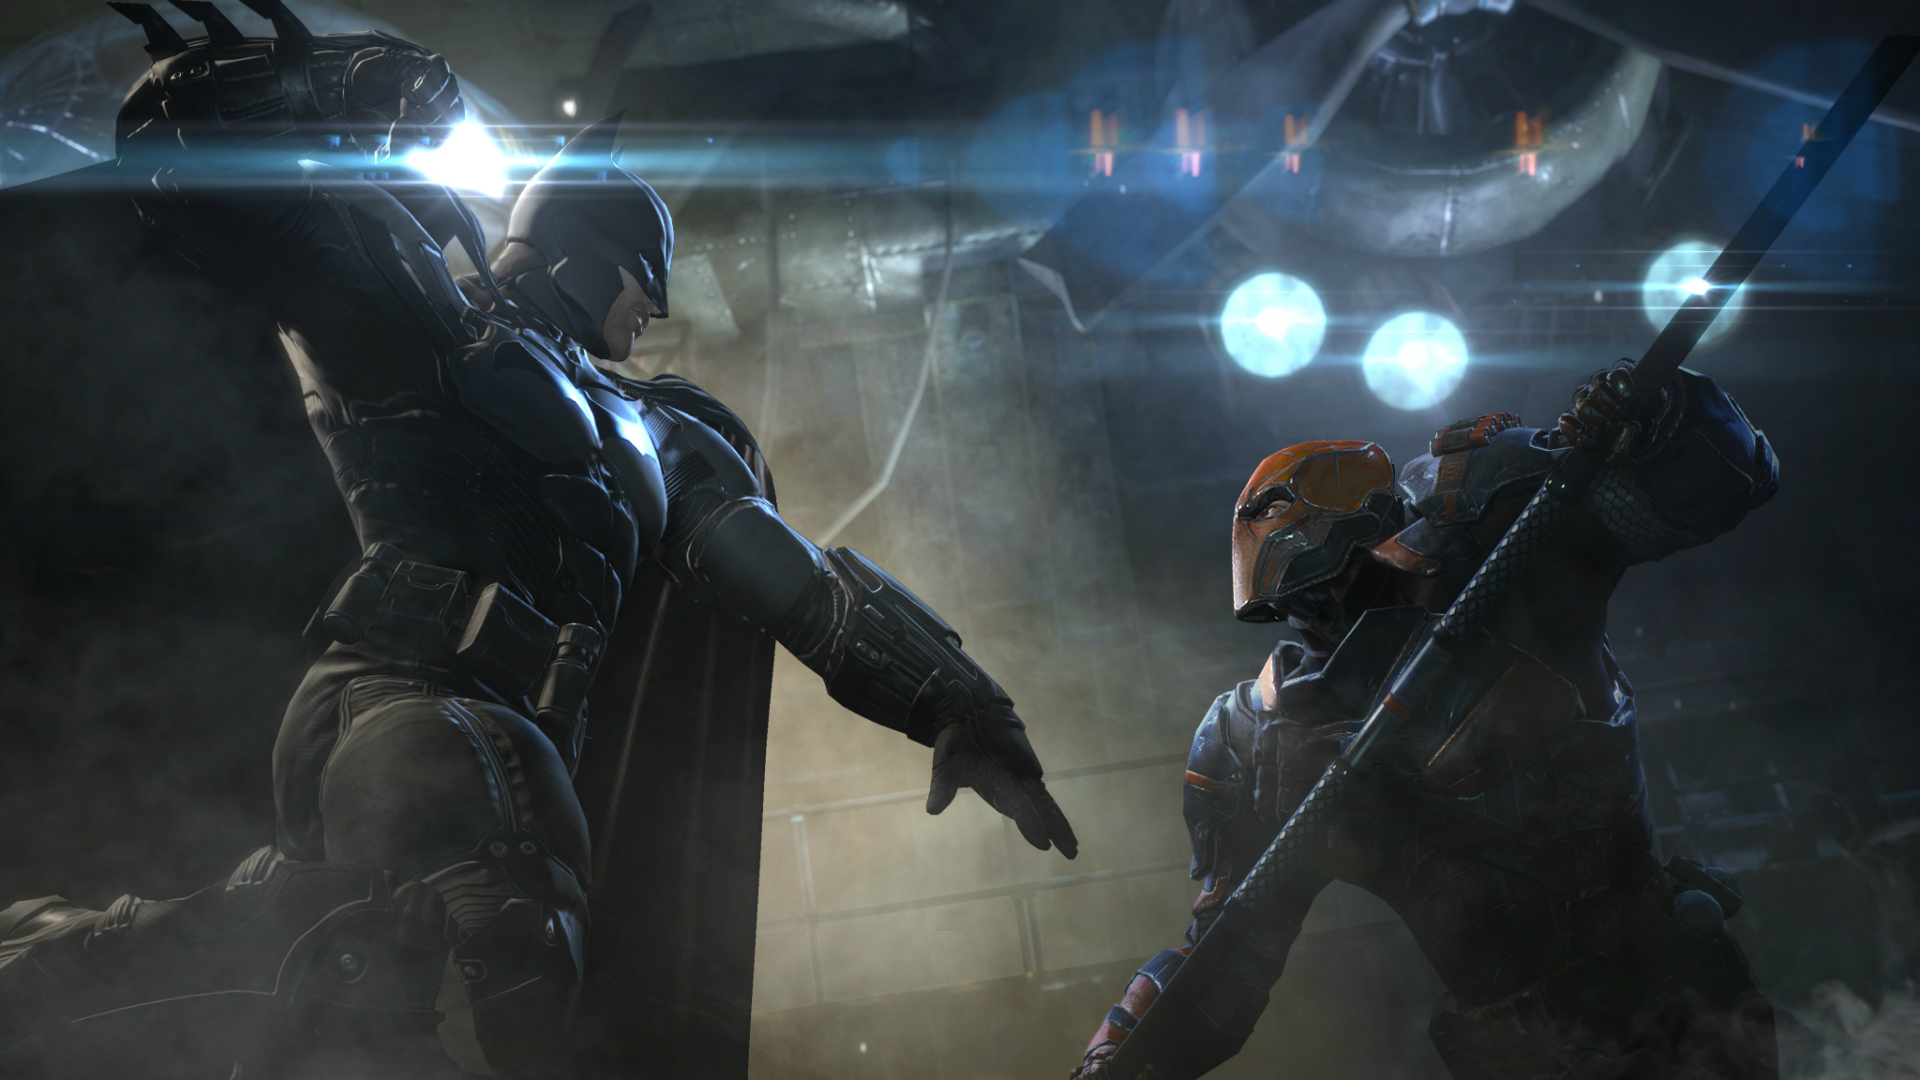 Deathstroke Vs Batman HD Games 4k Wallpapers Images Backgrounds